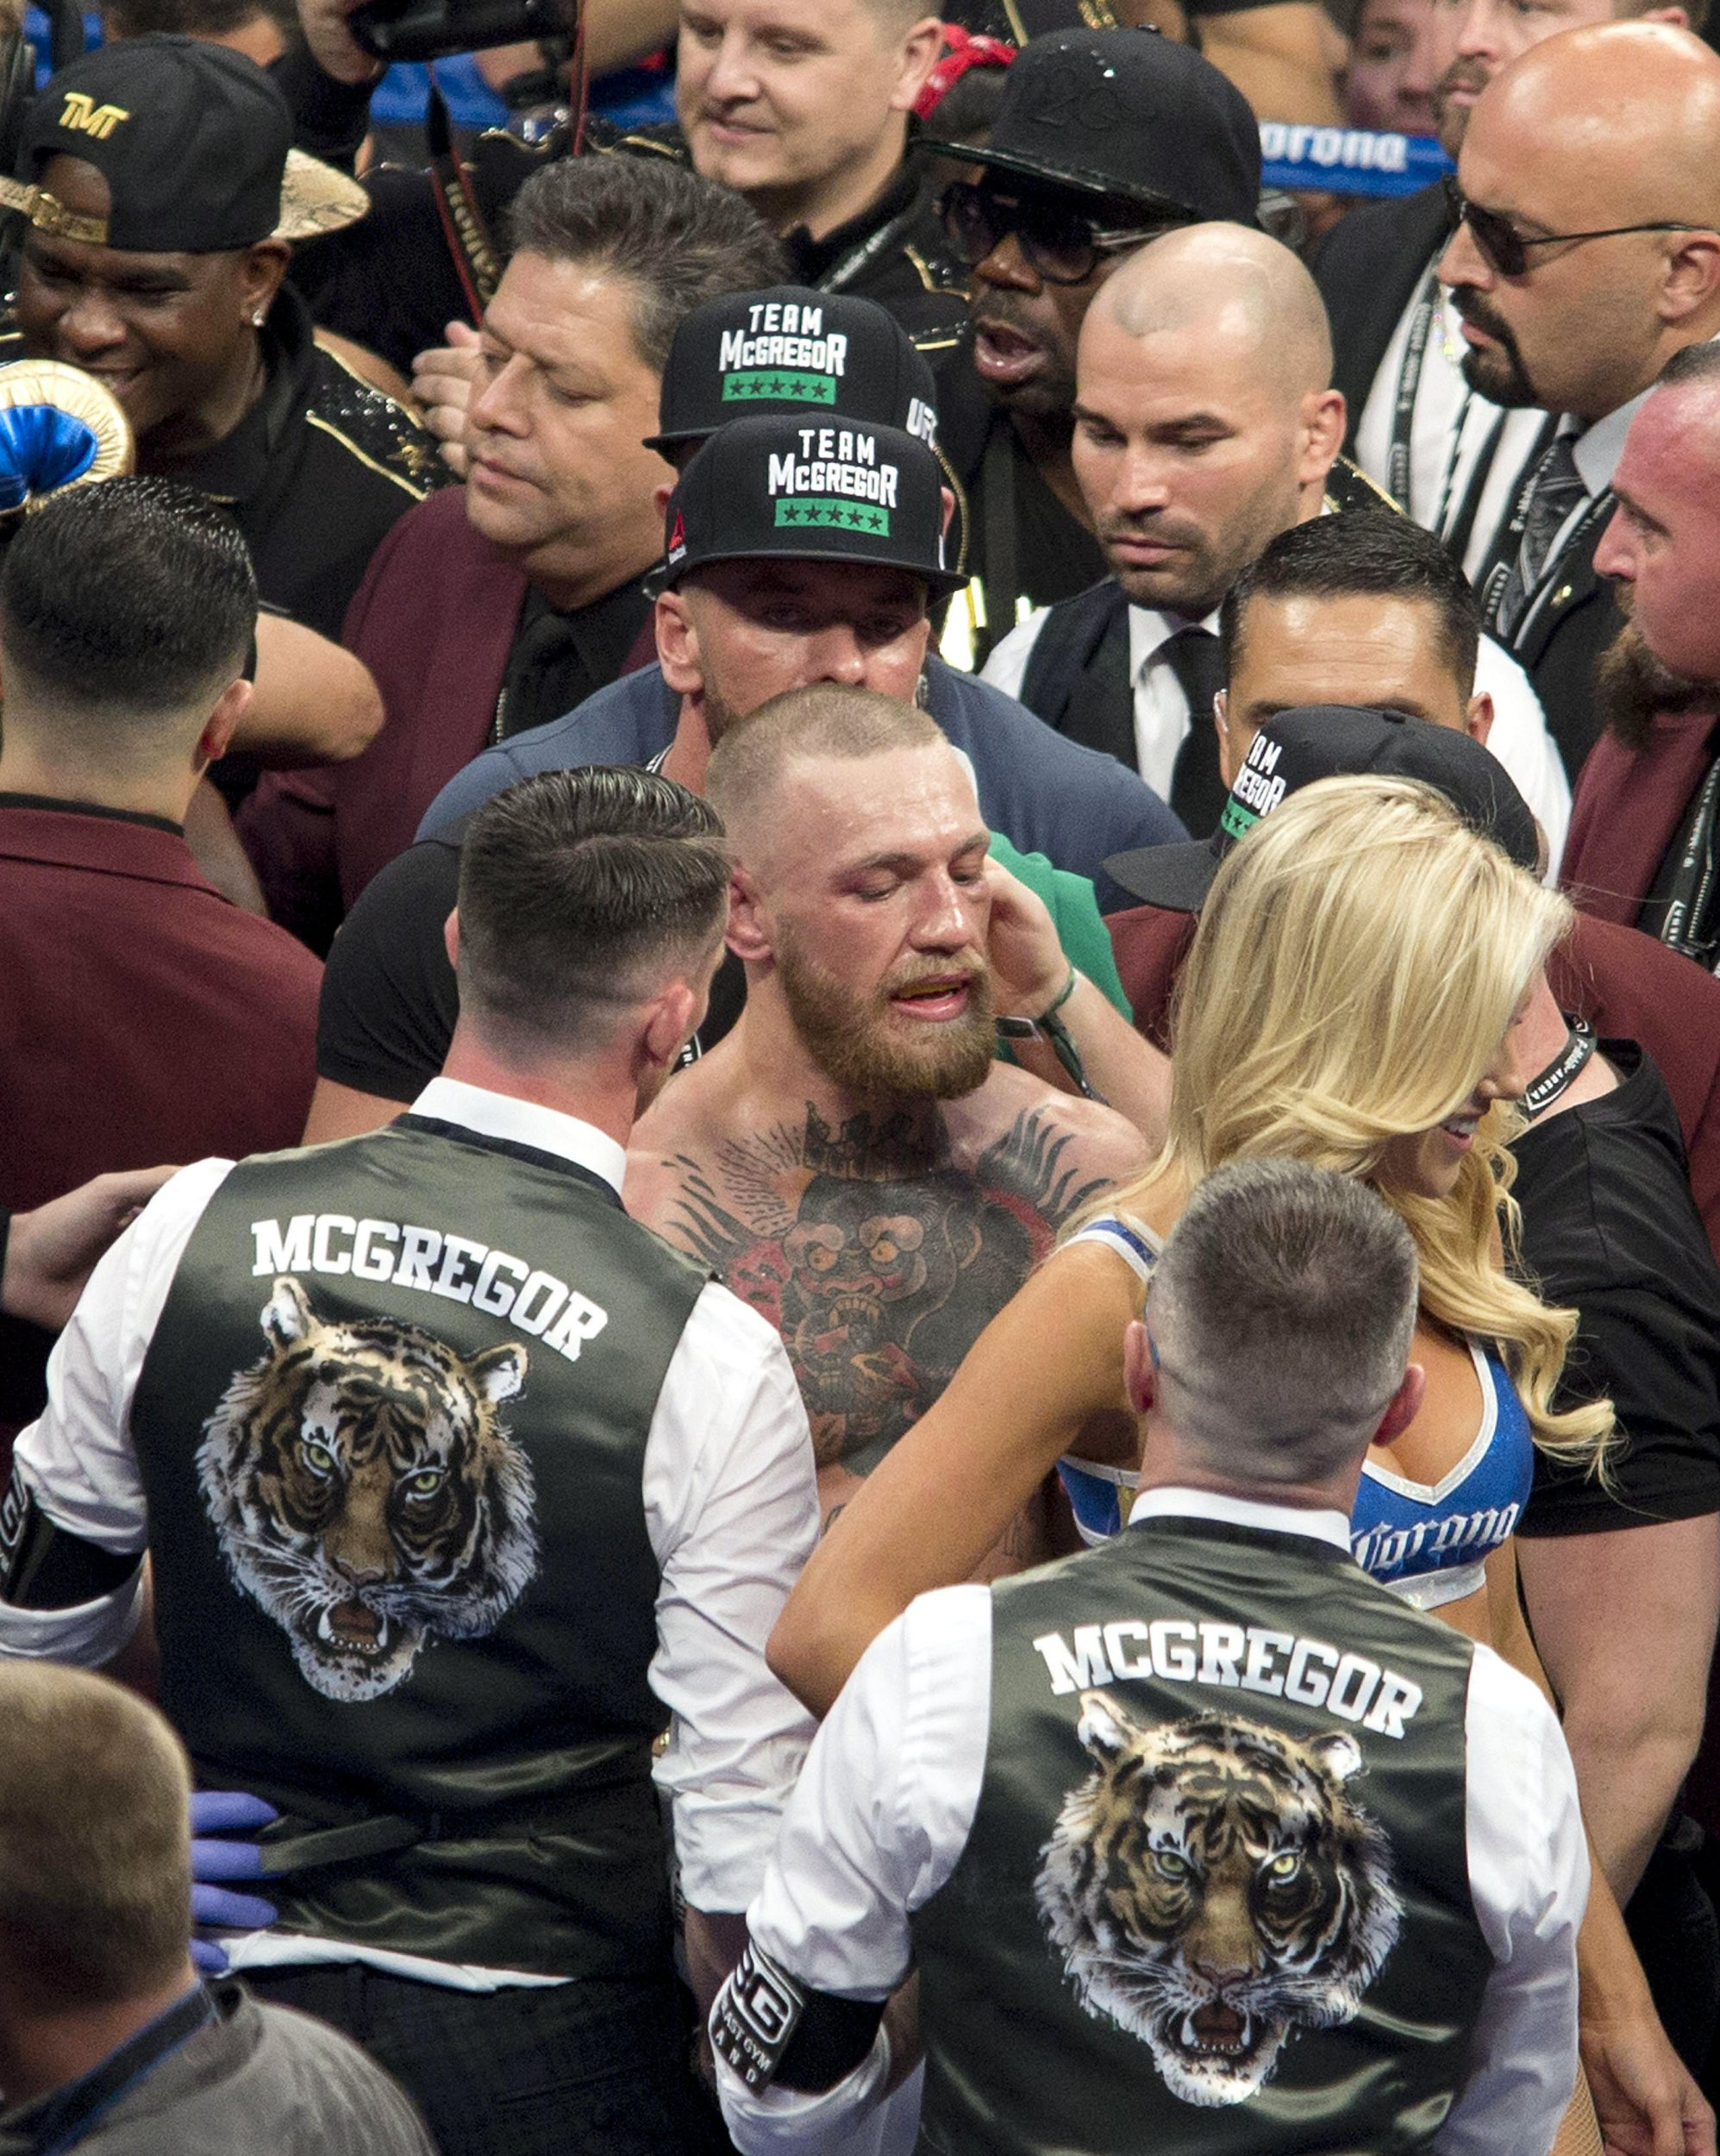 The many bold claims made by Conor McGregor that now look ridiculous after defeat to Floyd Mayweather